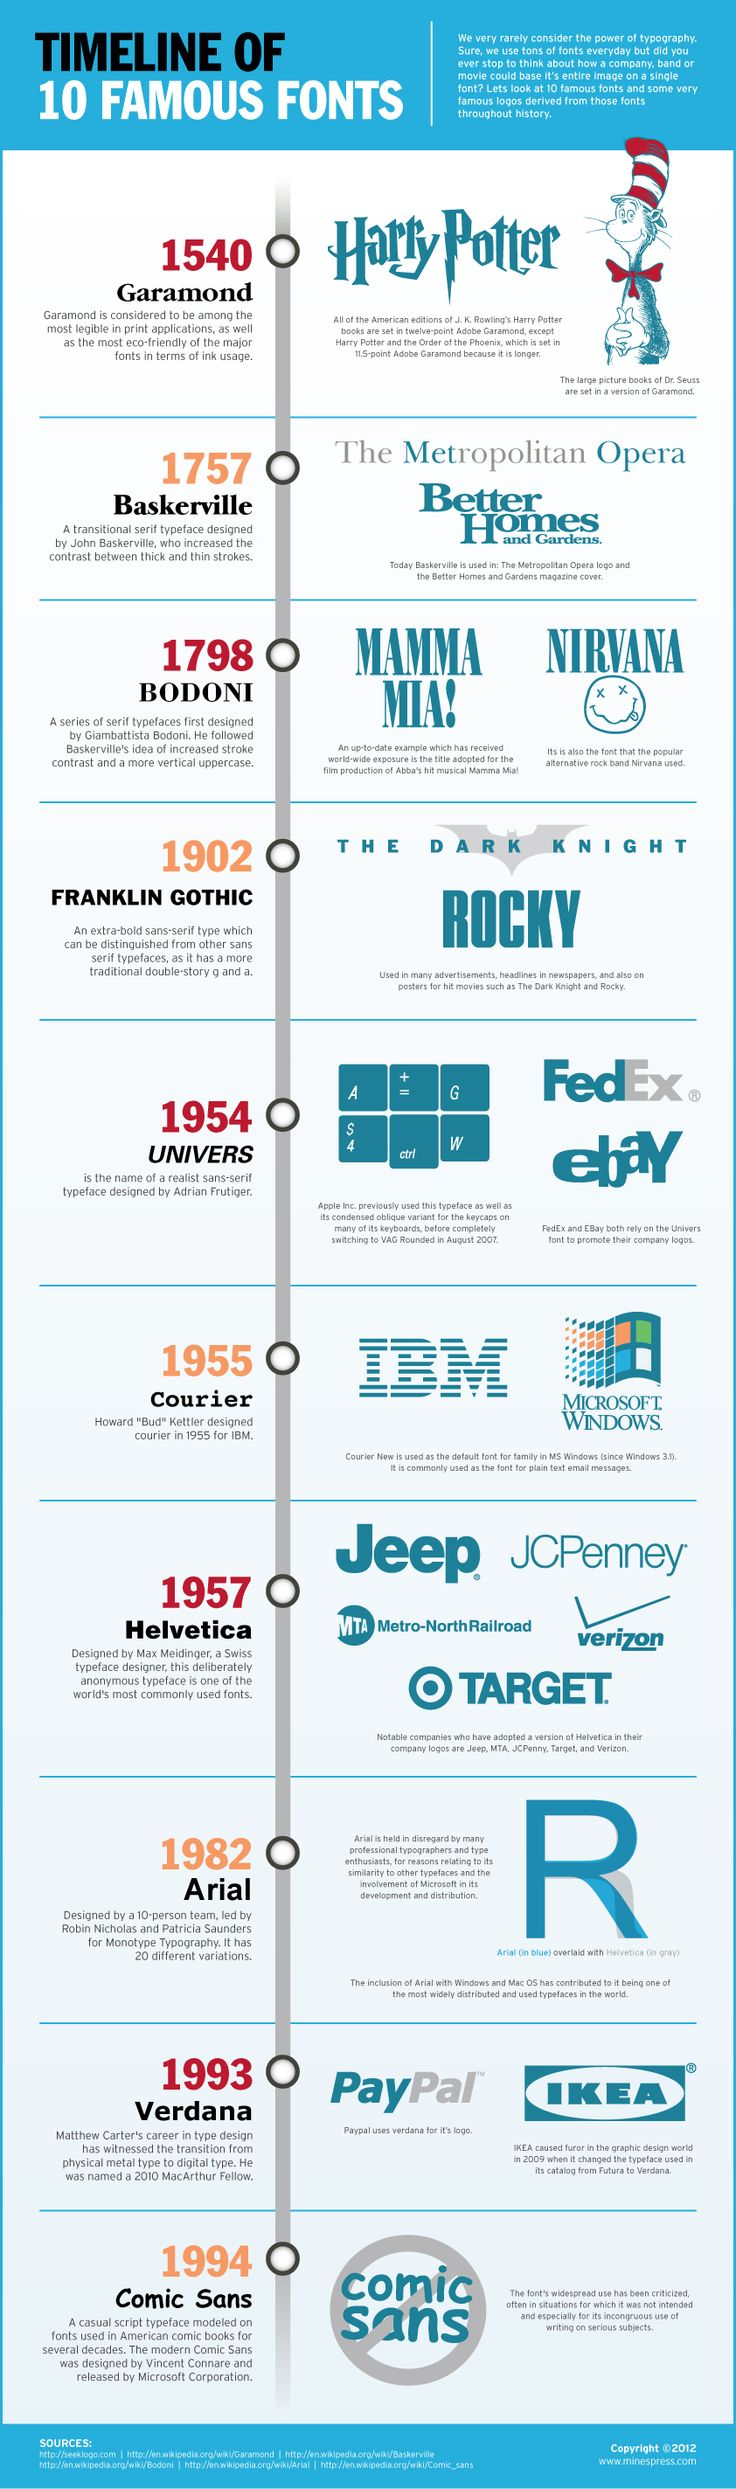 Another cool link is HowDoIShipMyCar.com  Timeline of 10 famous fonts #infographic